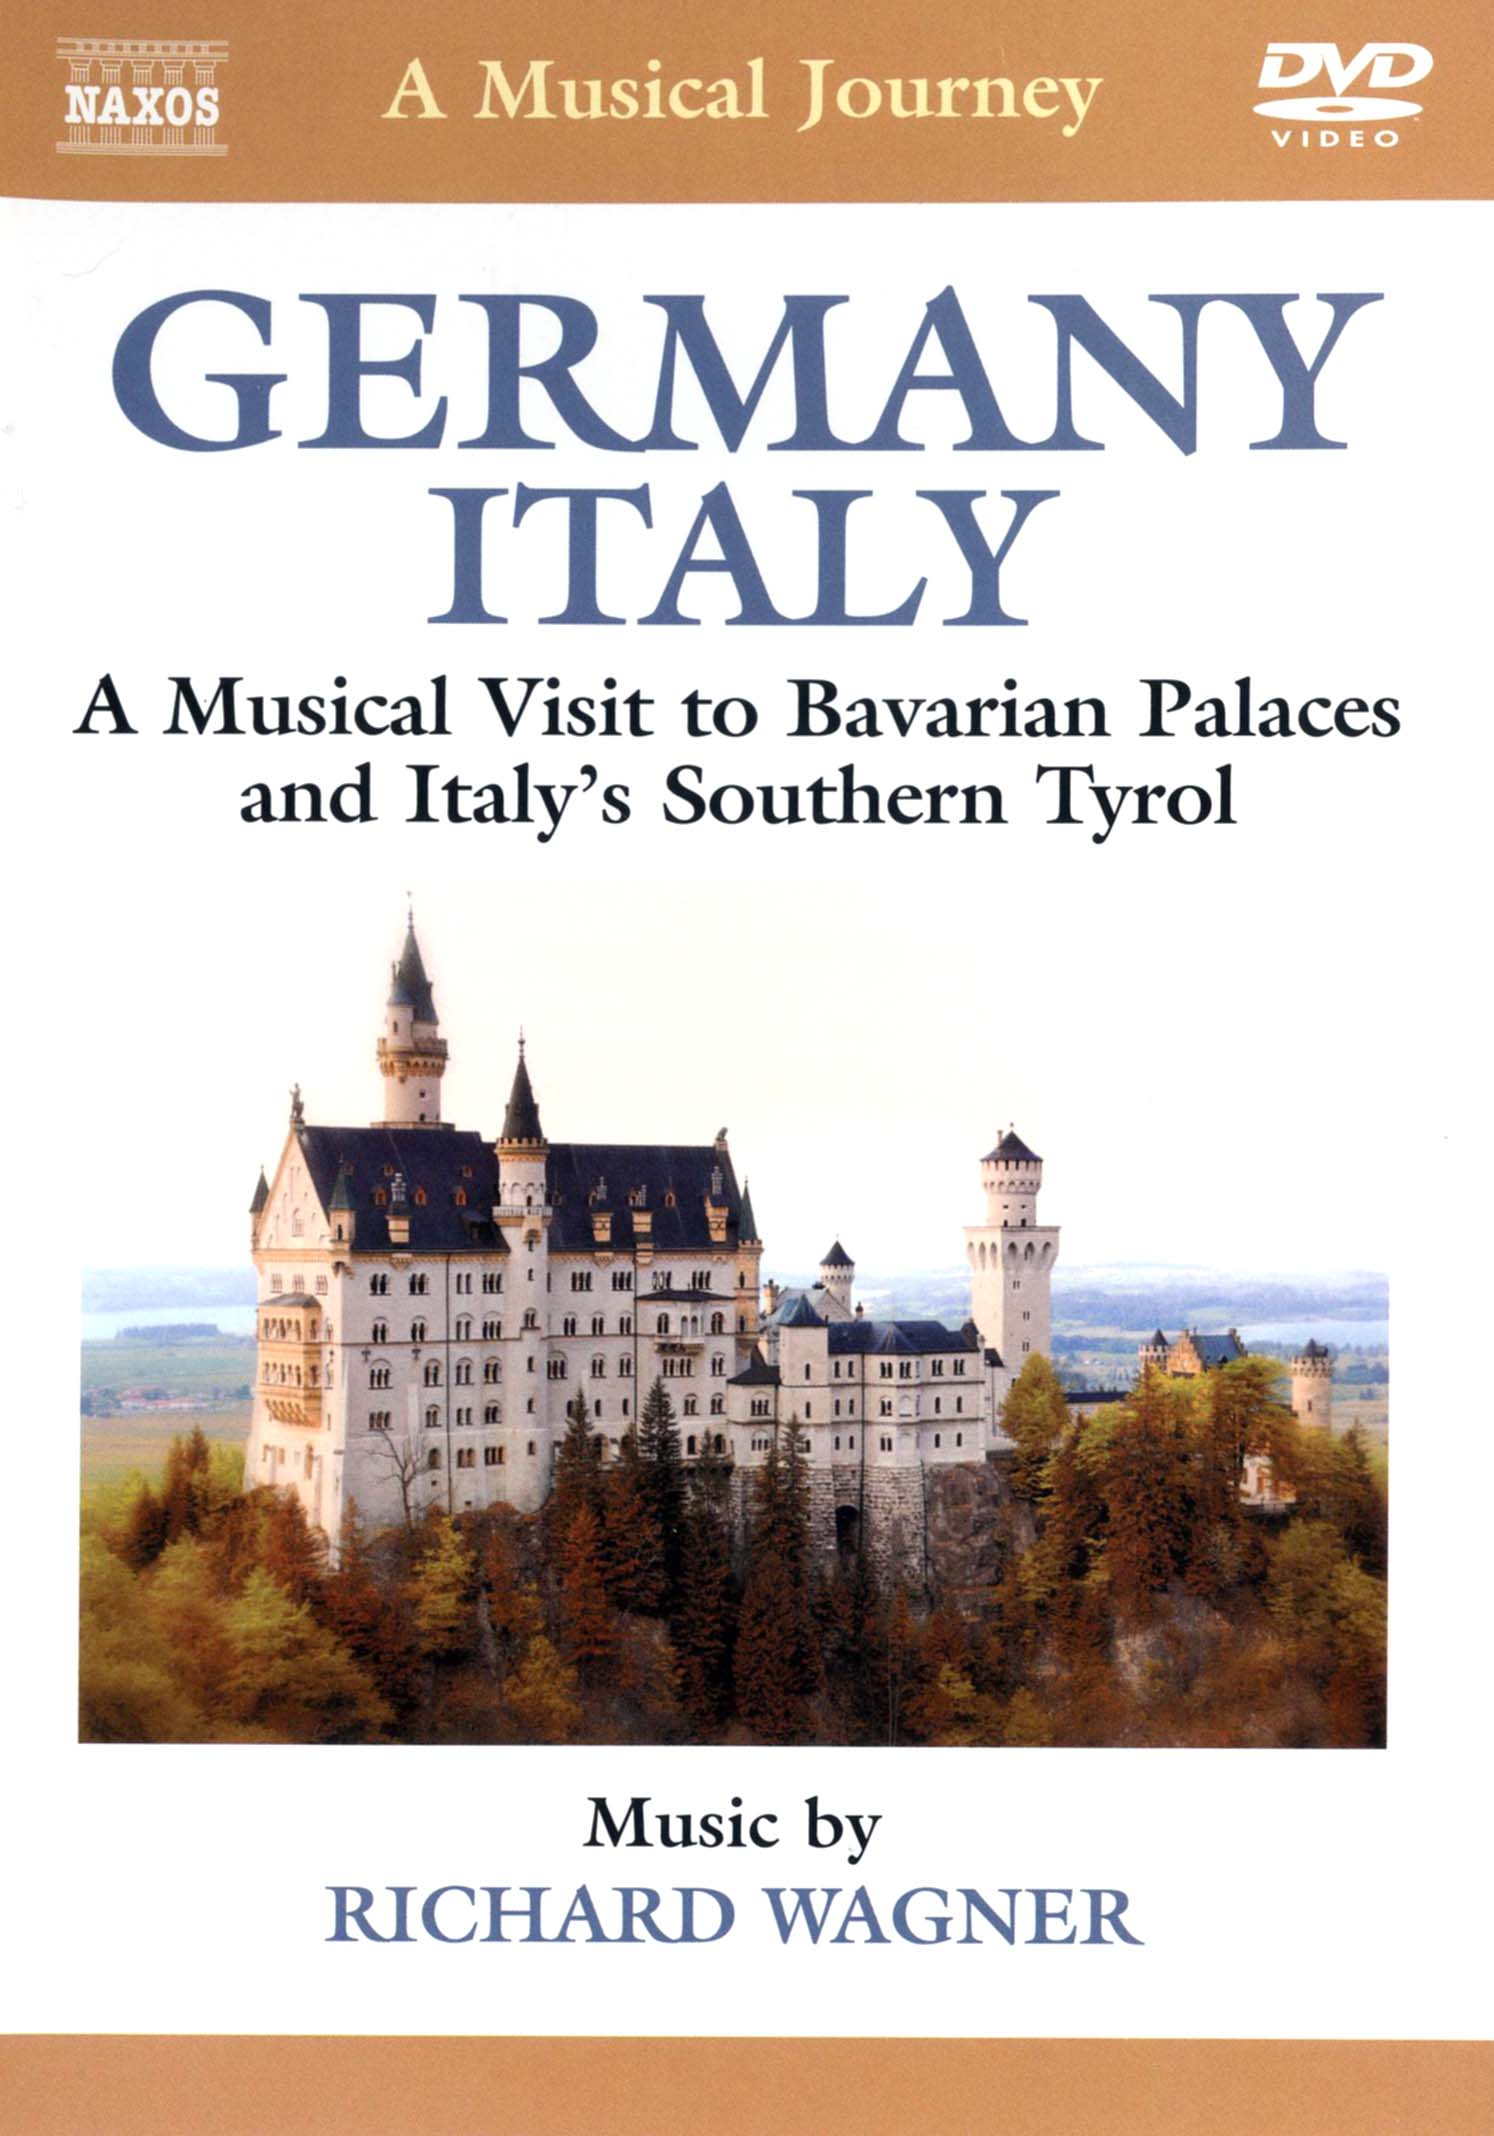 A Musical Journey: Germany/Italy - A Musical Visit to Bavarian Palaces and Italy's Southern Tyrol